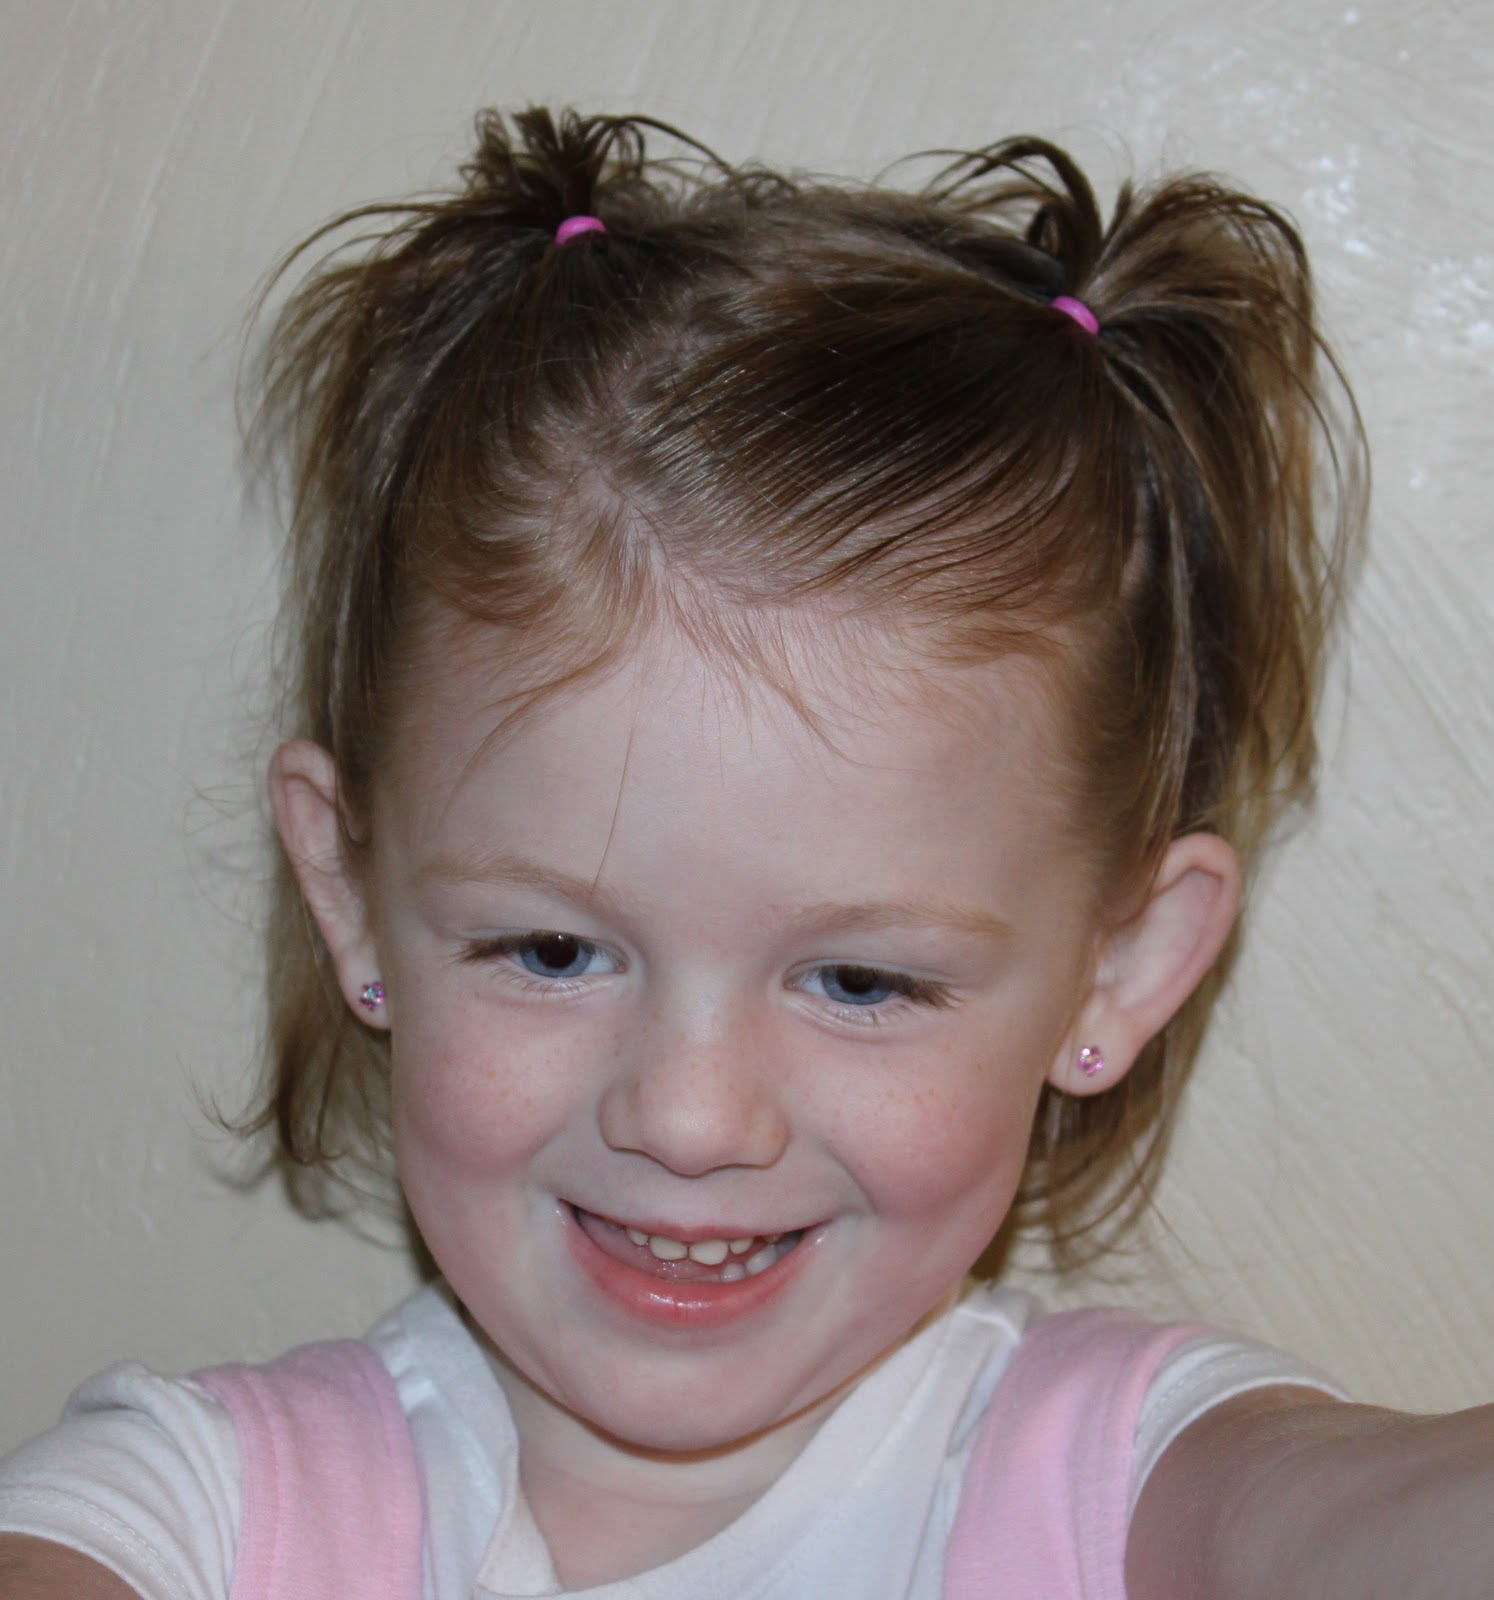 Toddler Girls Hairstyles And Cute Haircuts - Hairstyles666